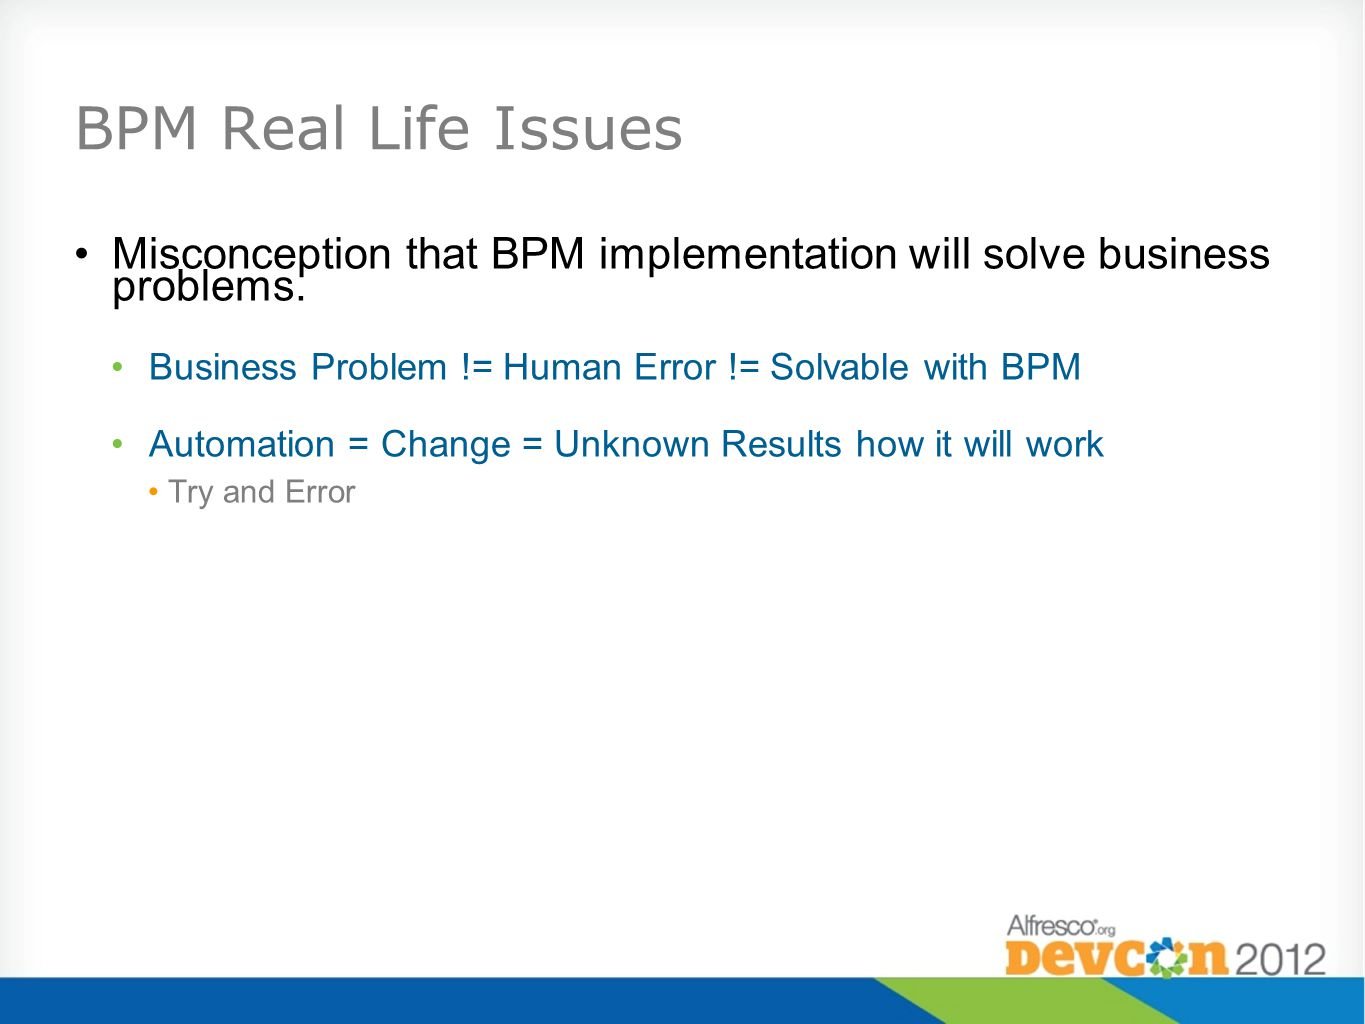 BPM Real Life Issues Misconception that BPM implementation will solve business problems. Business Problem != Human Error != Solvable with BPM.